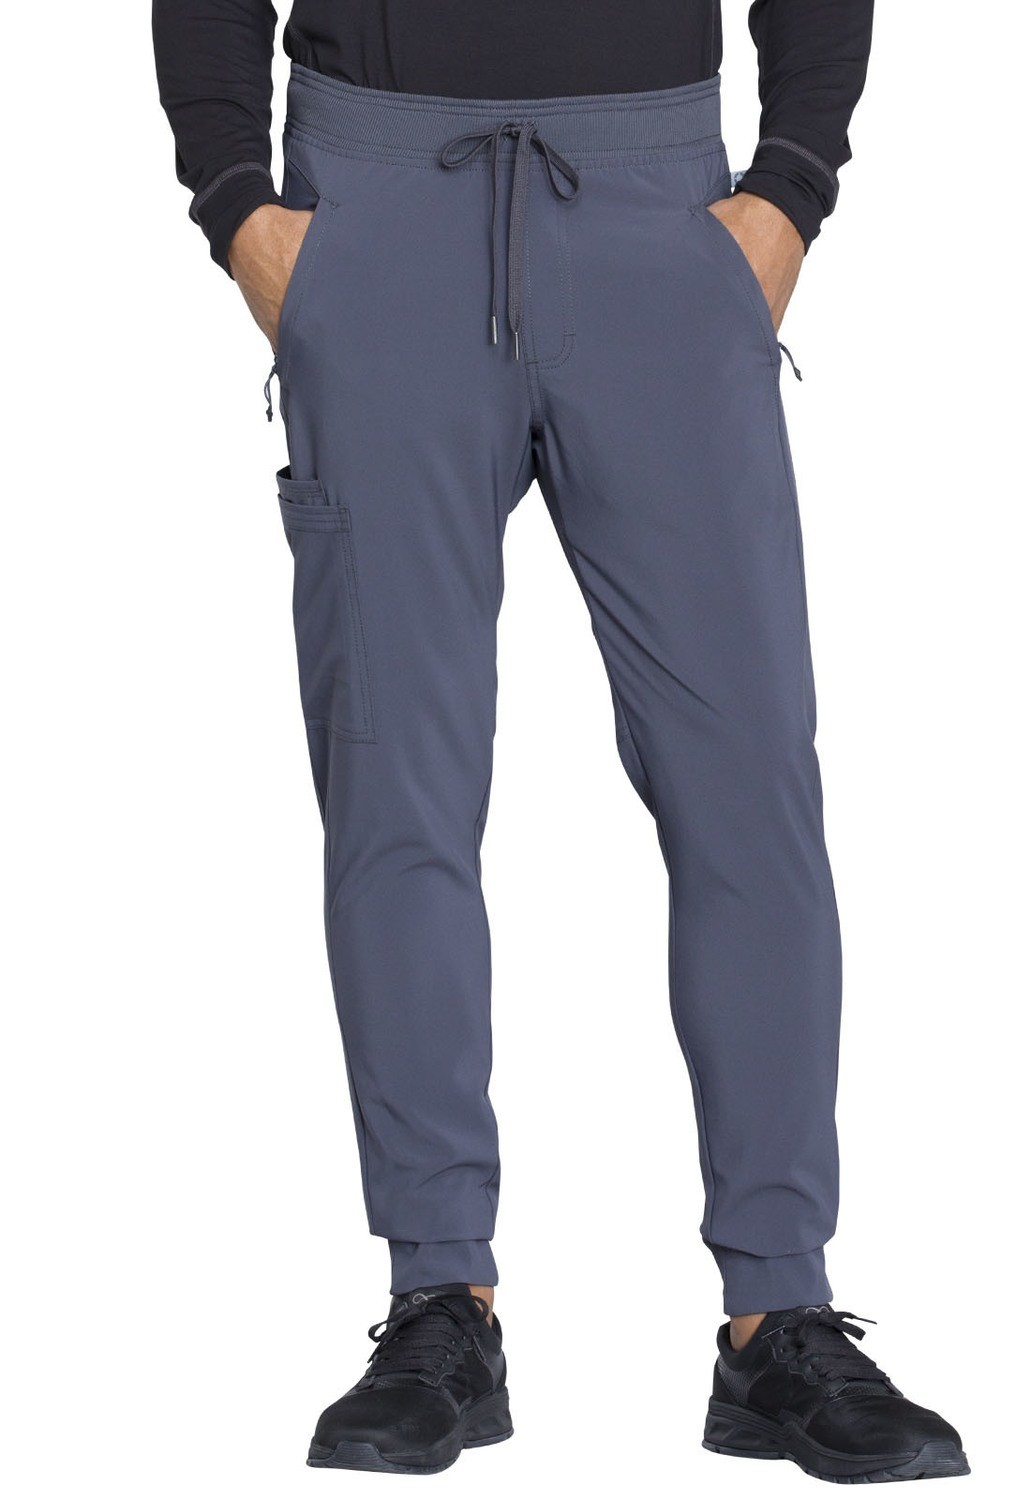 Pantalone CHEROKEE INFINITY CK004A Colore Pewter